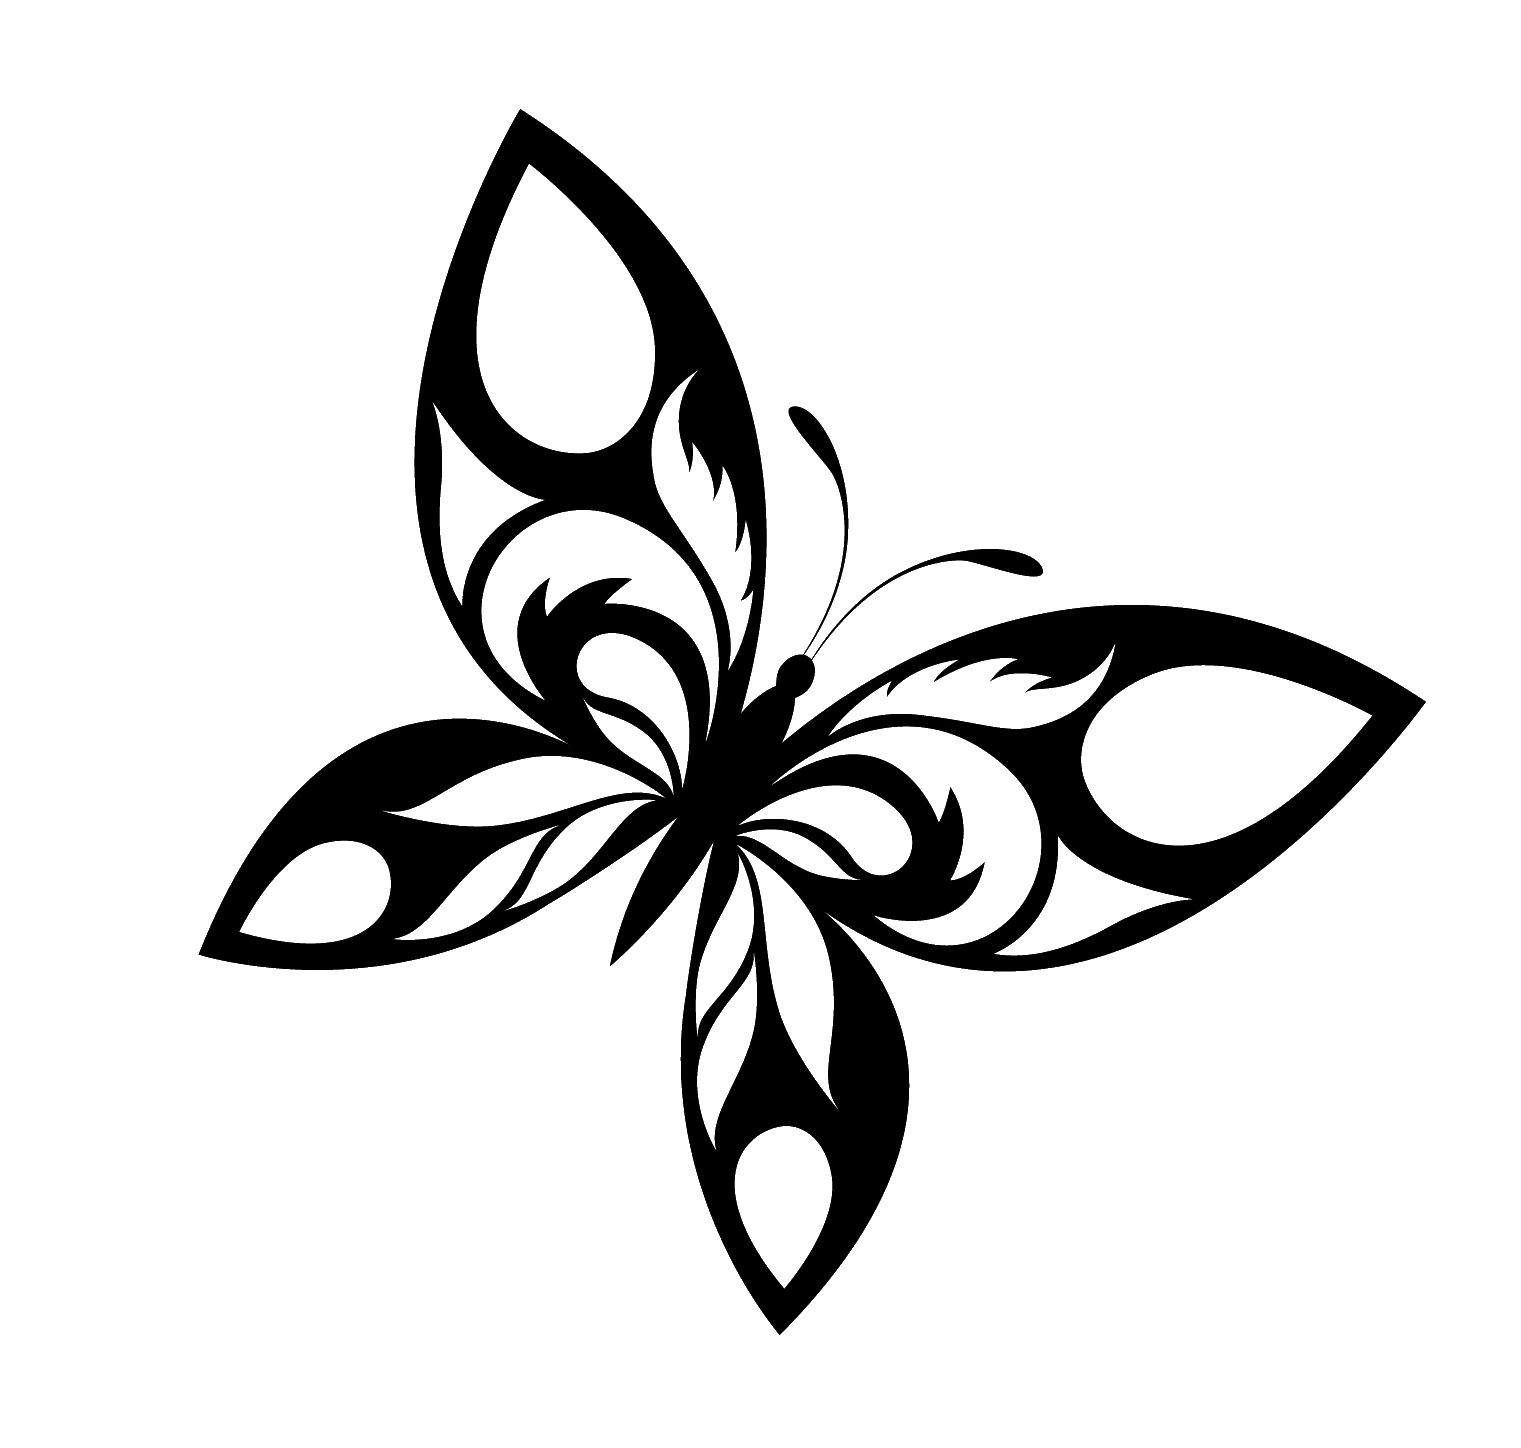 Butterfly Tattoo Designs Free Download Png PNG Image